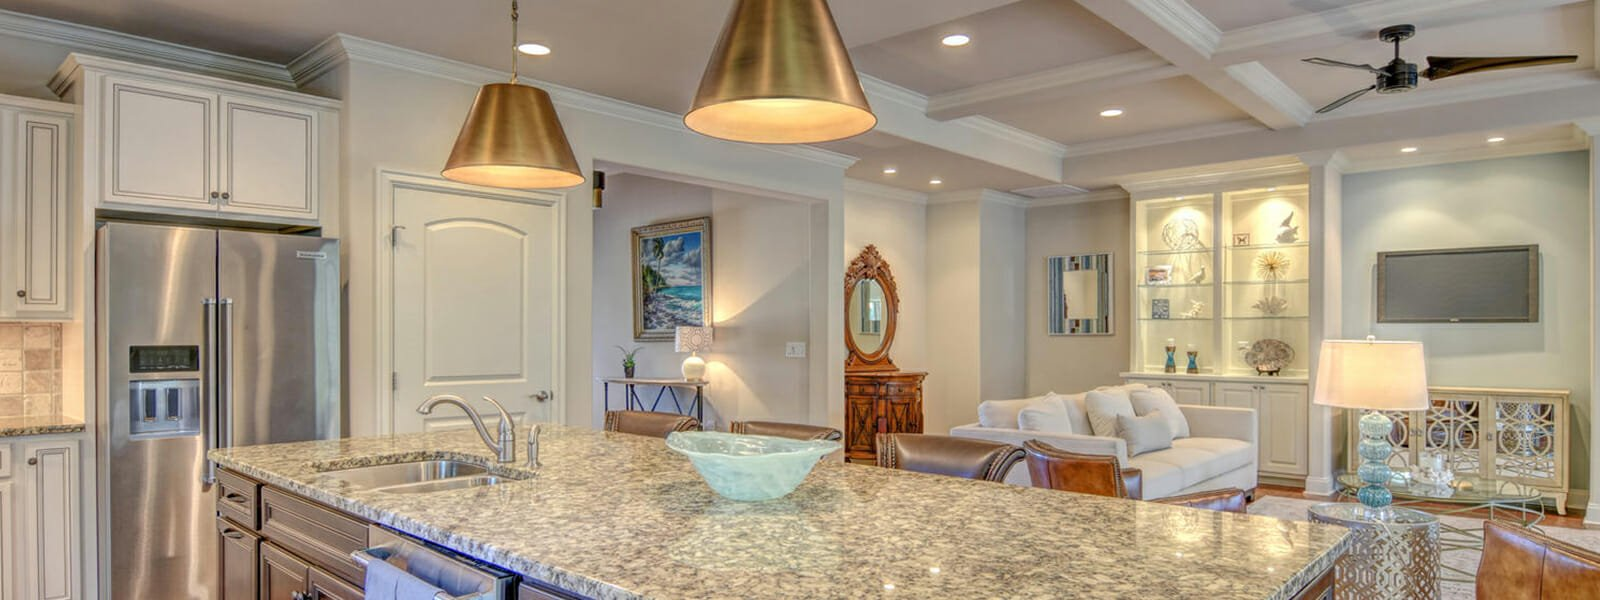 The Village at Mott's Landing | Gated Active Adult Community Wilmington NC Coast